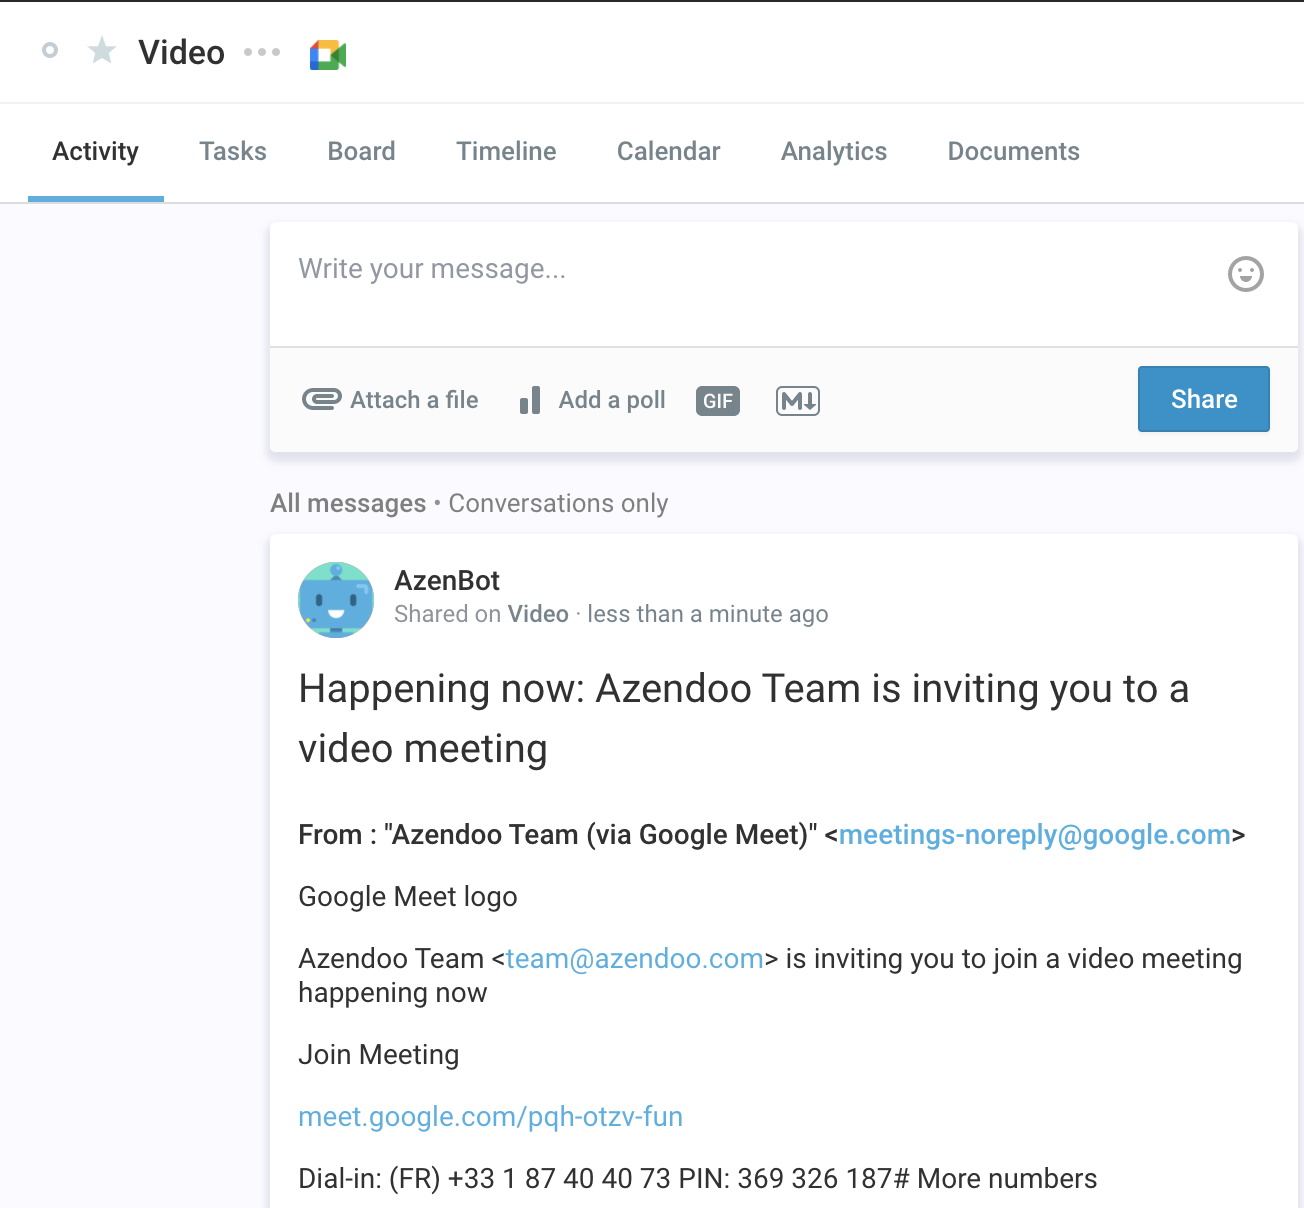 Notification sent to Azendoo Subject's Activity Feed after inviting on Google Meet